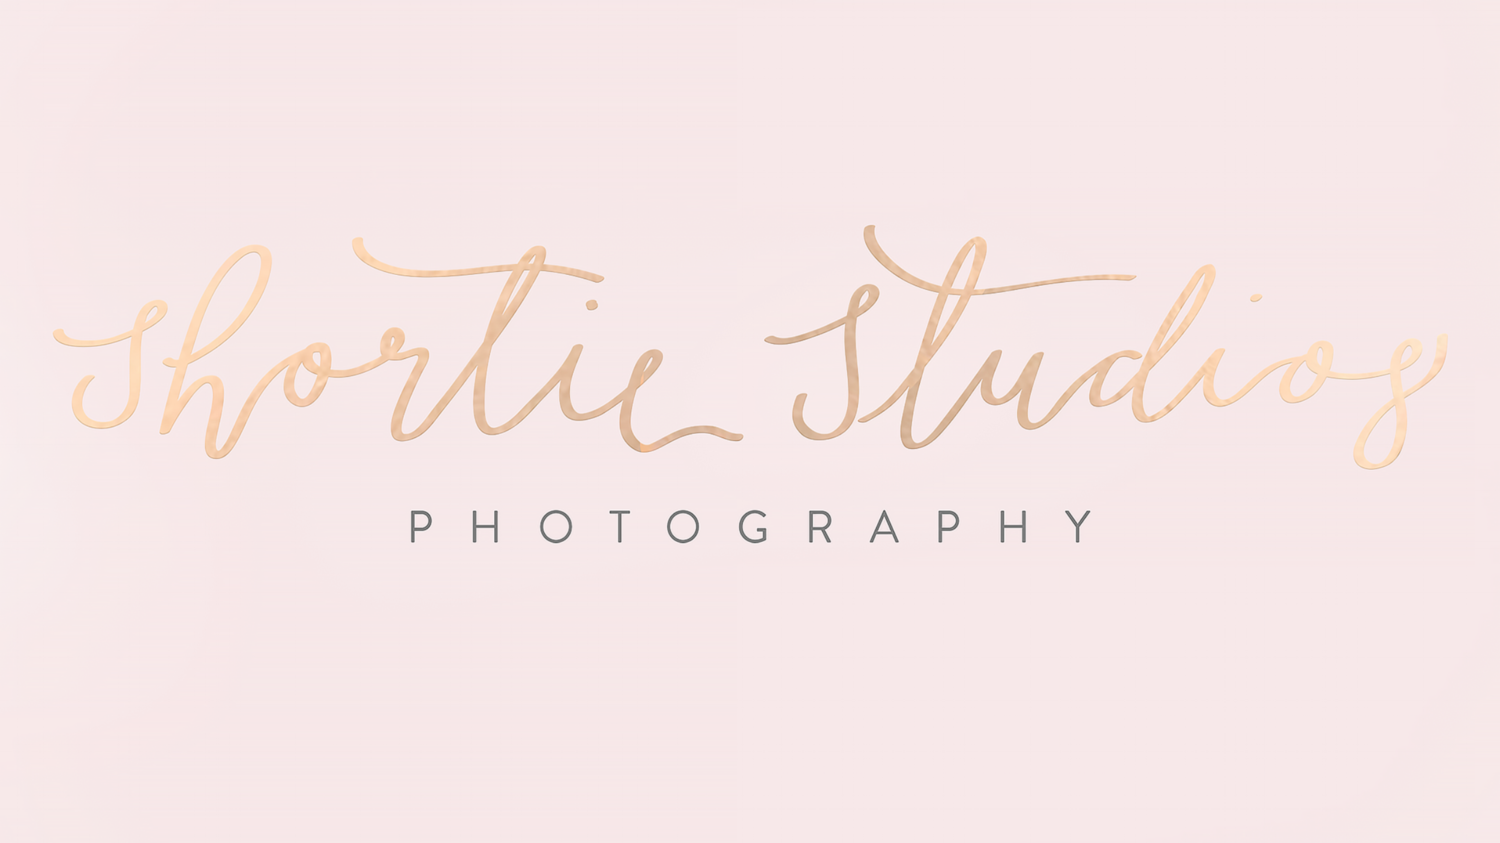 Shortie Studios Photography